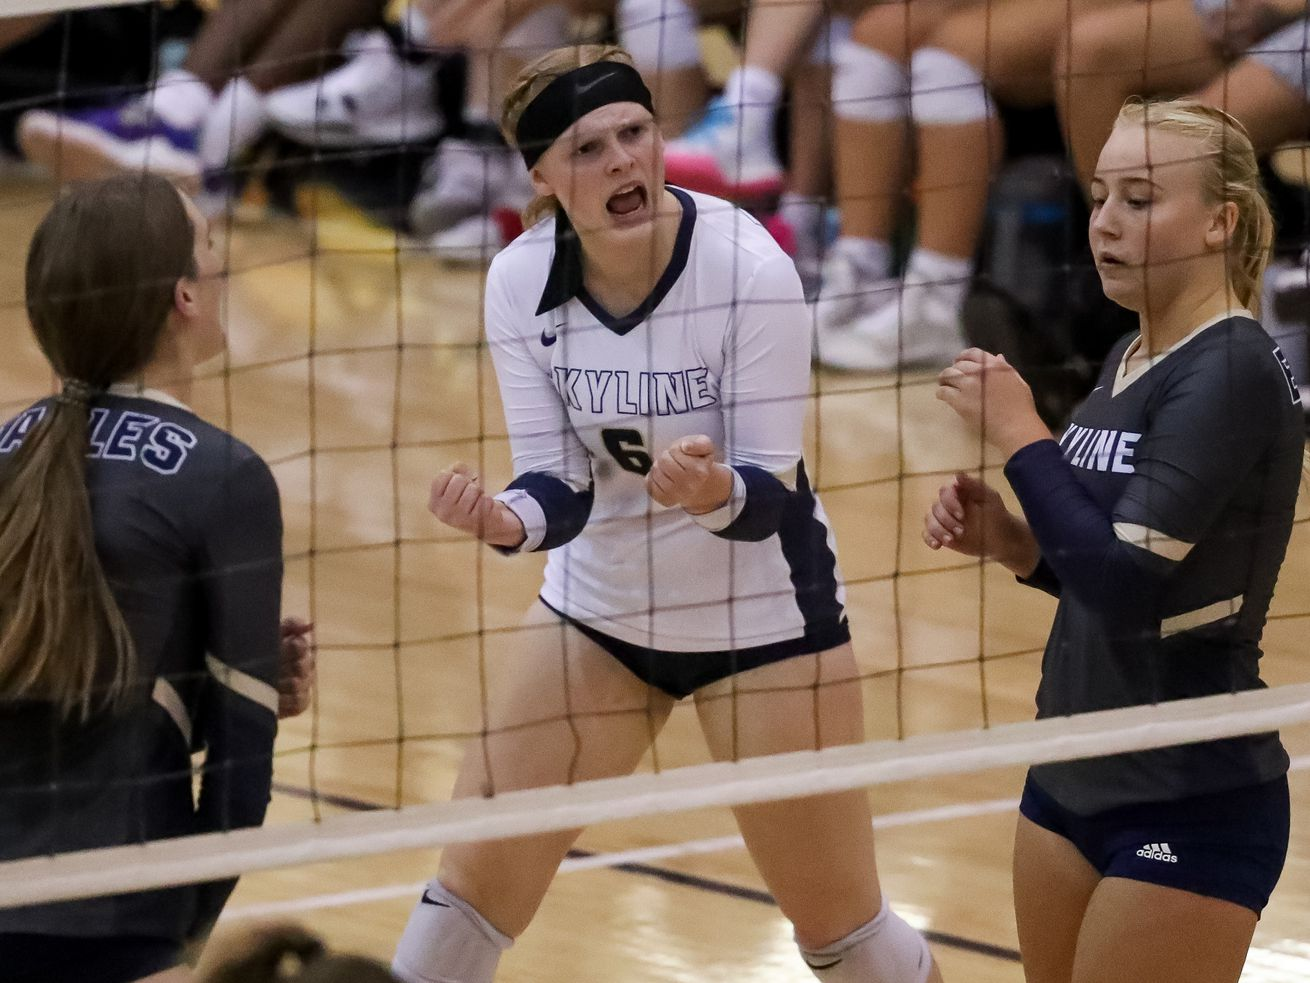 Skyline's Anna Rosse, wearing a white jersey, screams with teammates